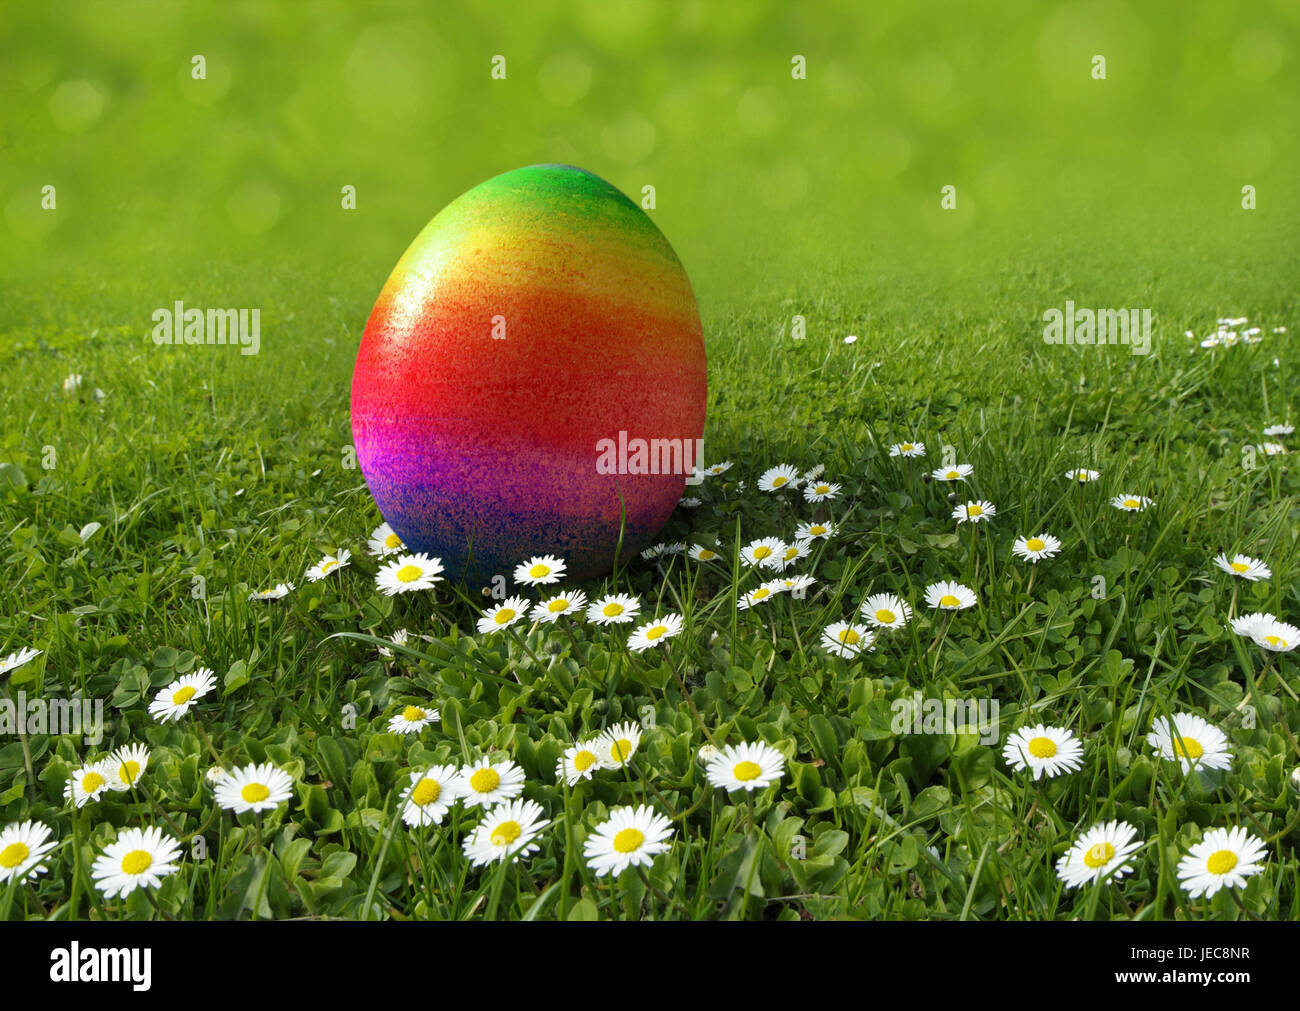 Easter, meadow, daisy, Easter egg, rainbow-coloured, egg search, [M], grass, flower meadow, spring meadow, flowers, - Stock Image